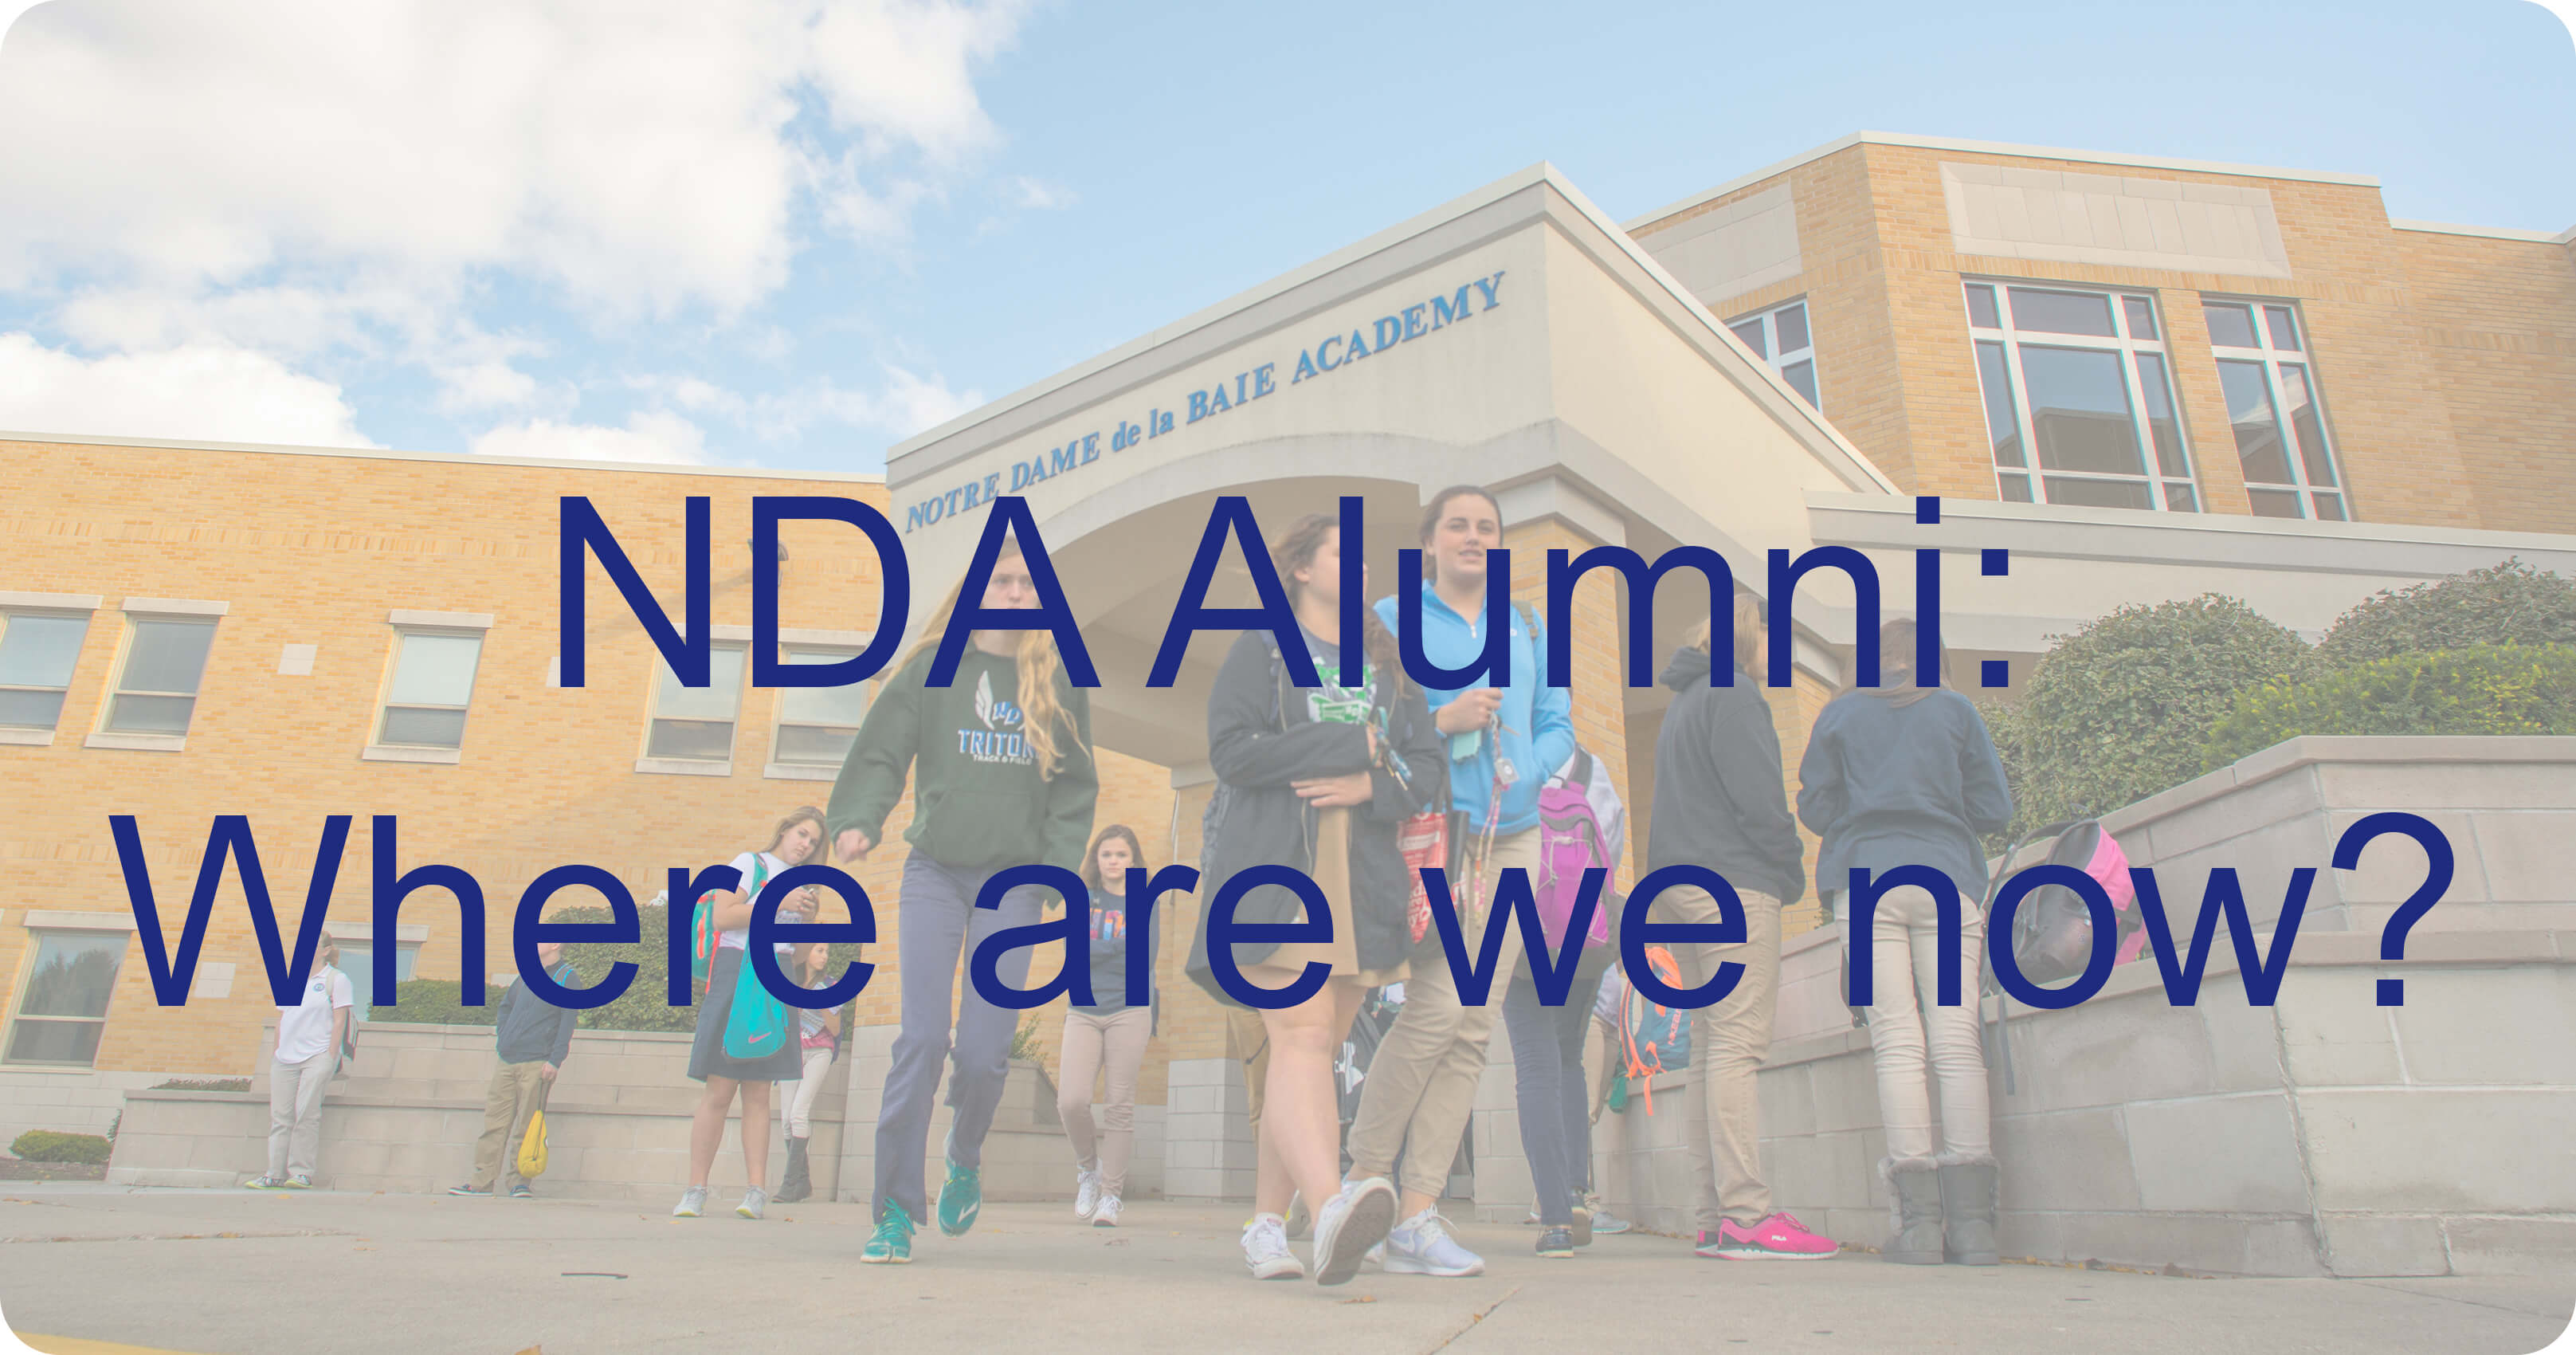 Photo of Notre Dame Academy school building with text saying NDA Alumni: Where are we now?